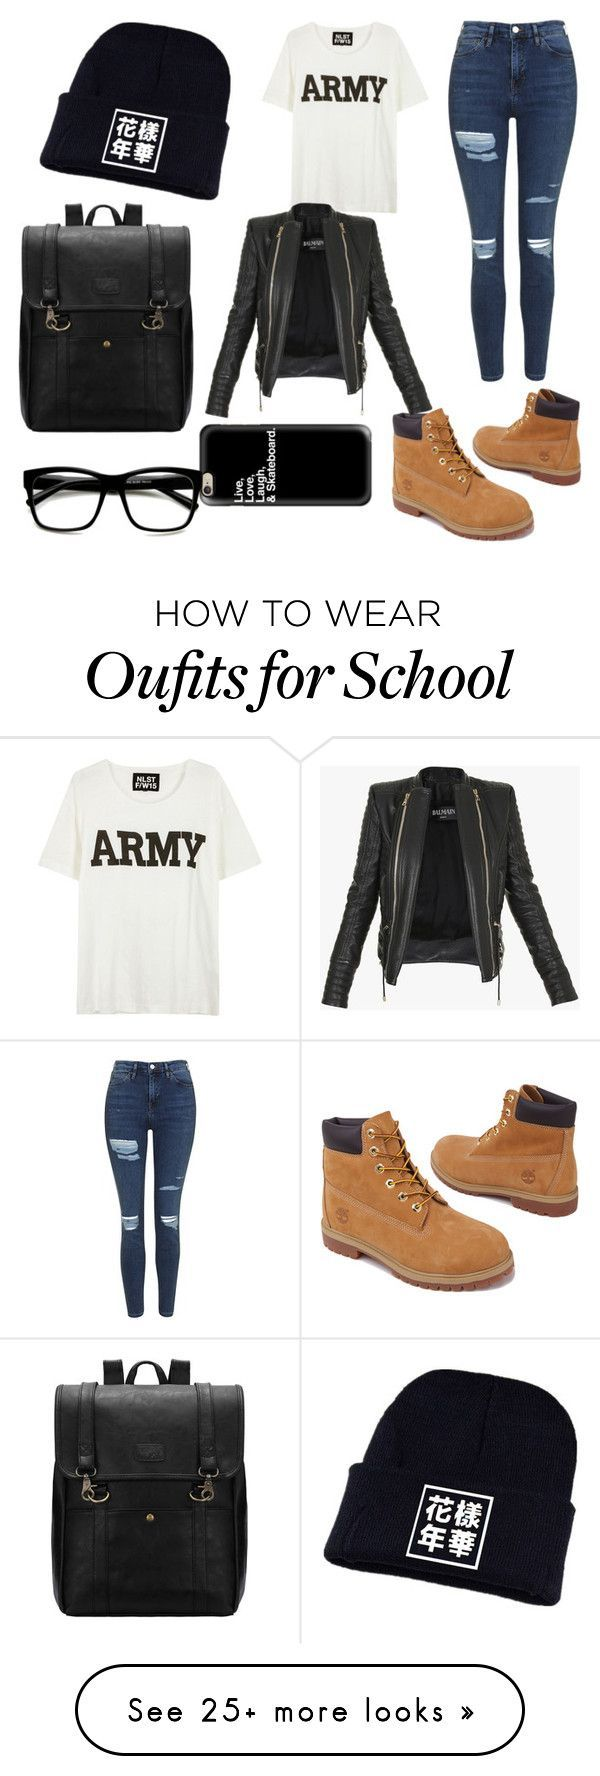 School mood by kimie-hunie on Polyvore featuring Timberland, Topshop, NLST, Casetify, Retrò and Balmain